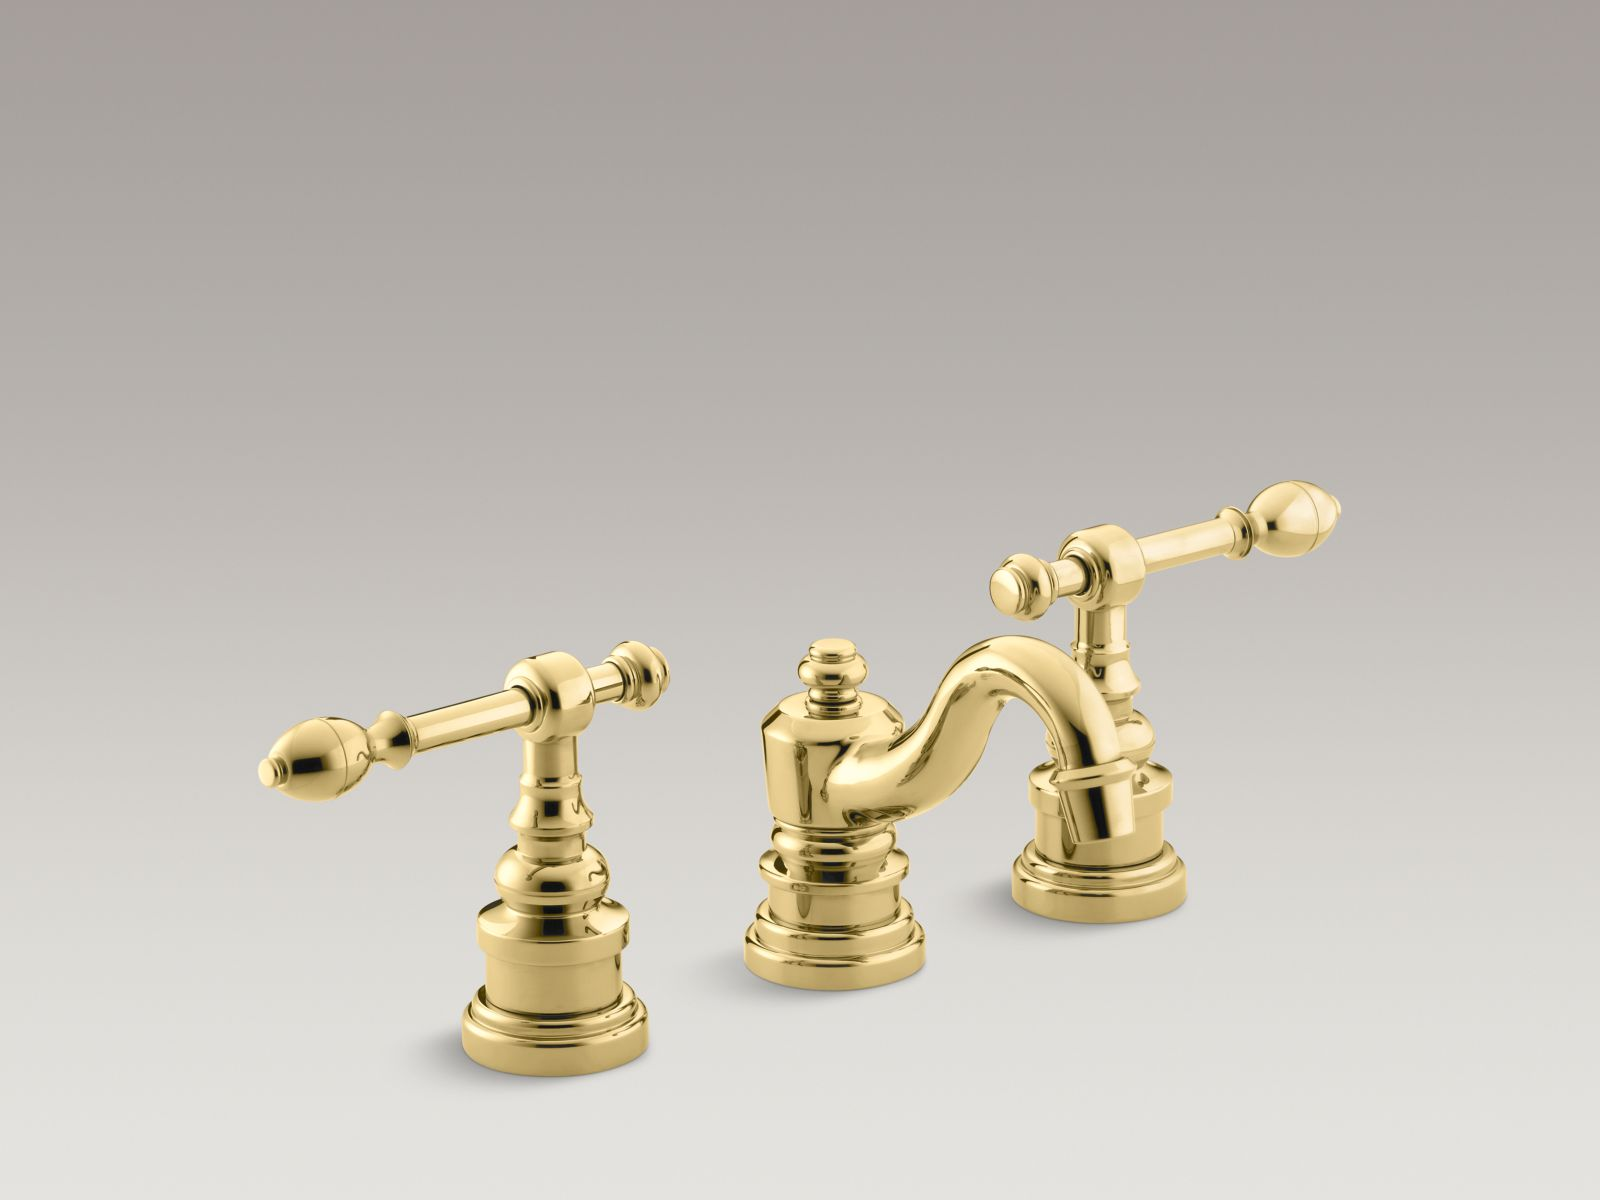 Kohler K-6811-4-PB IV Georges Brass Widespread Bathroom Sink Faucet with Lever Handles Vibrant Polished Brass